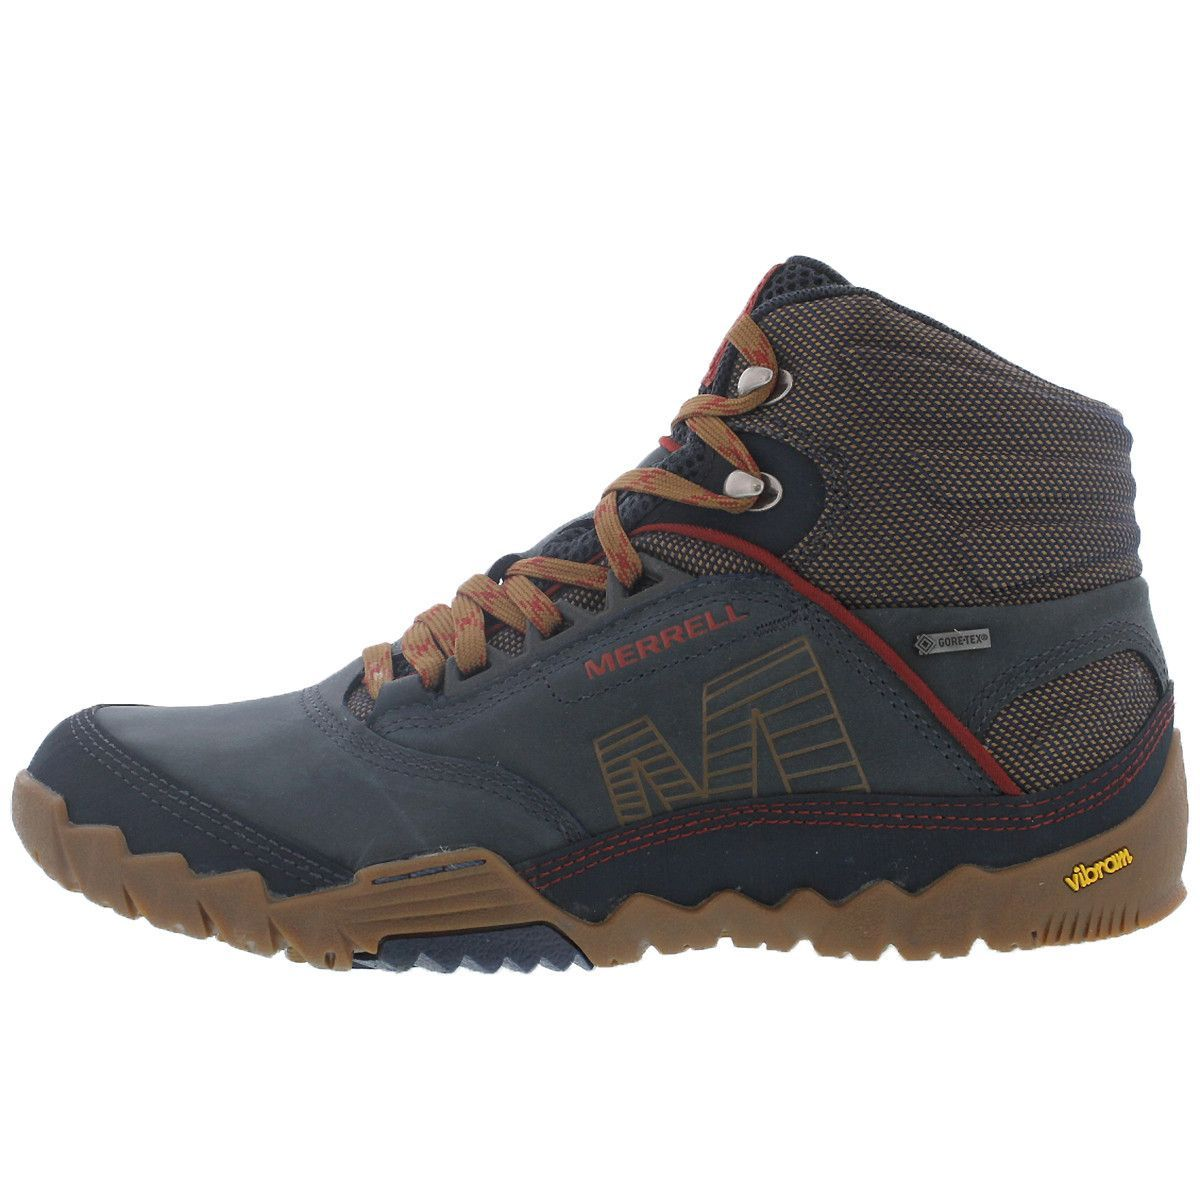 cf997210b1e521 Leather upper in blue wing - Merrell Strafuse upper provides a precise,  glove like